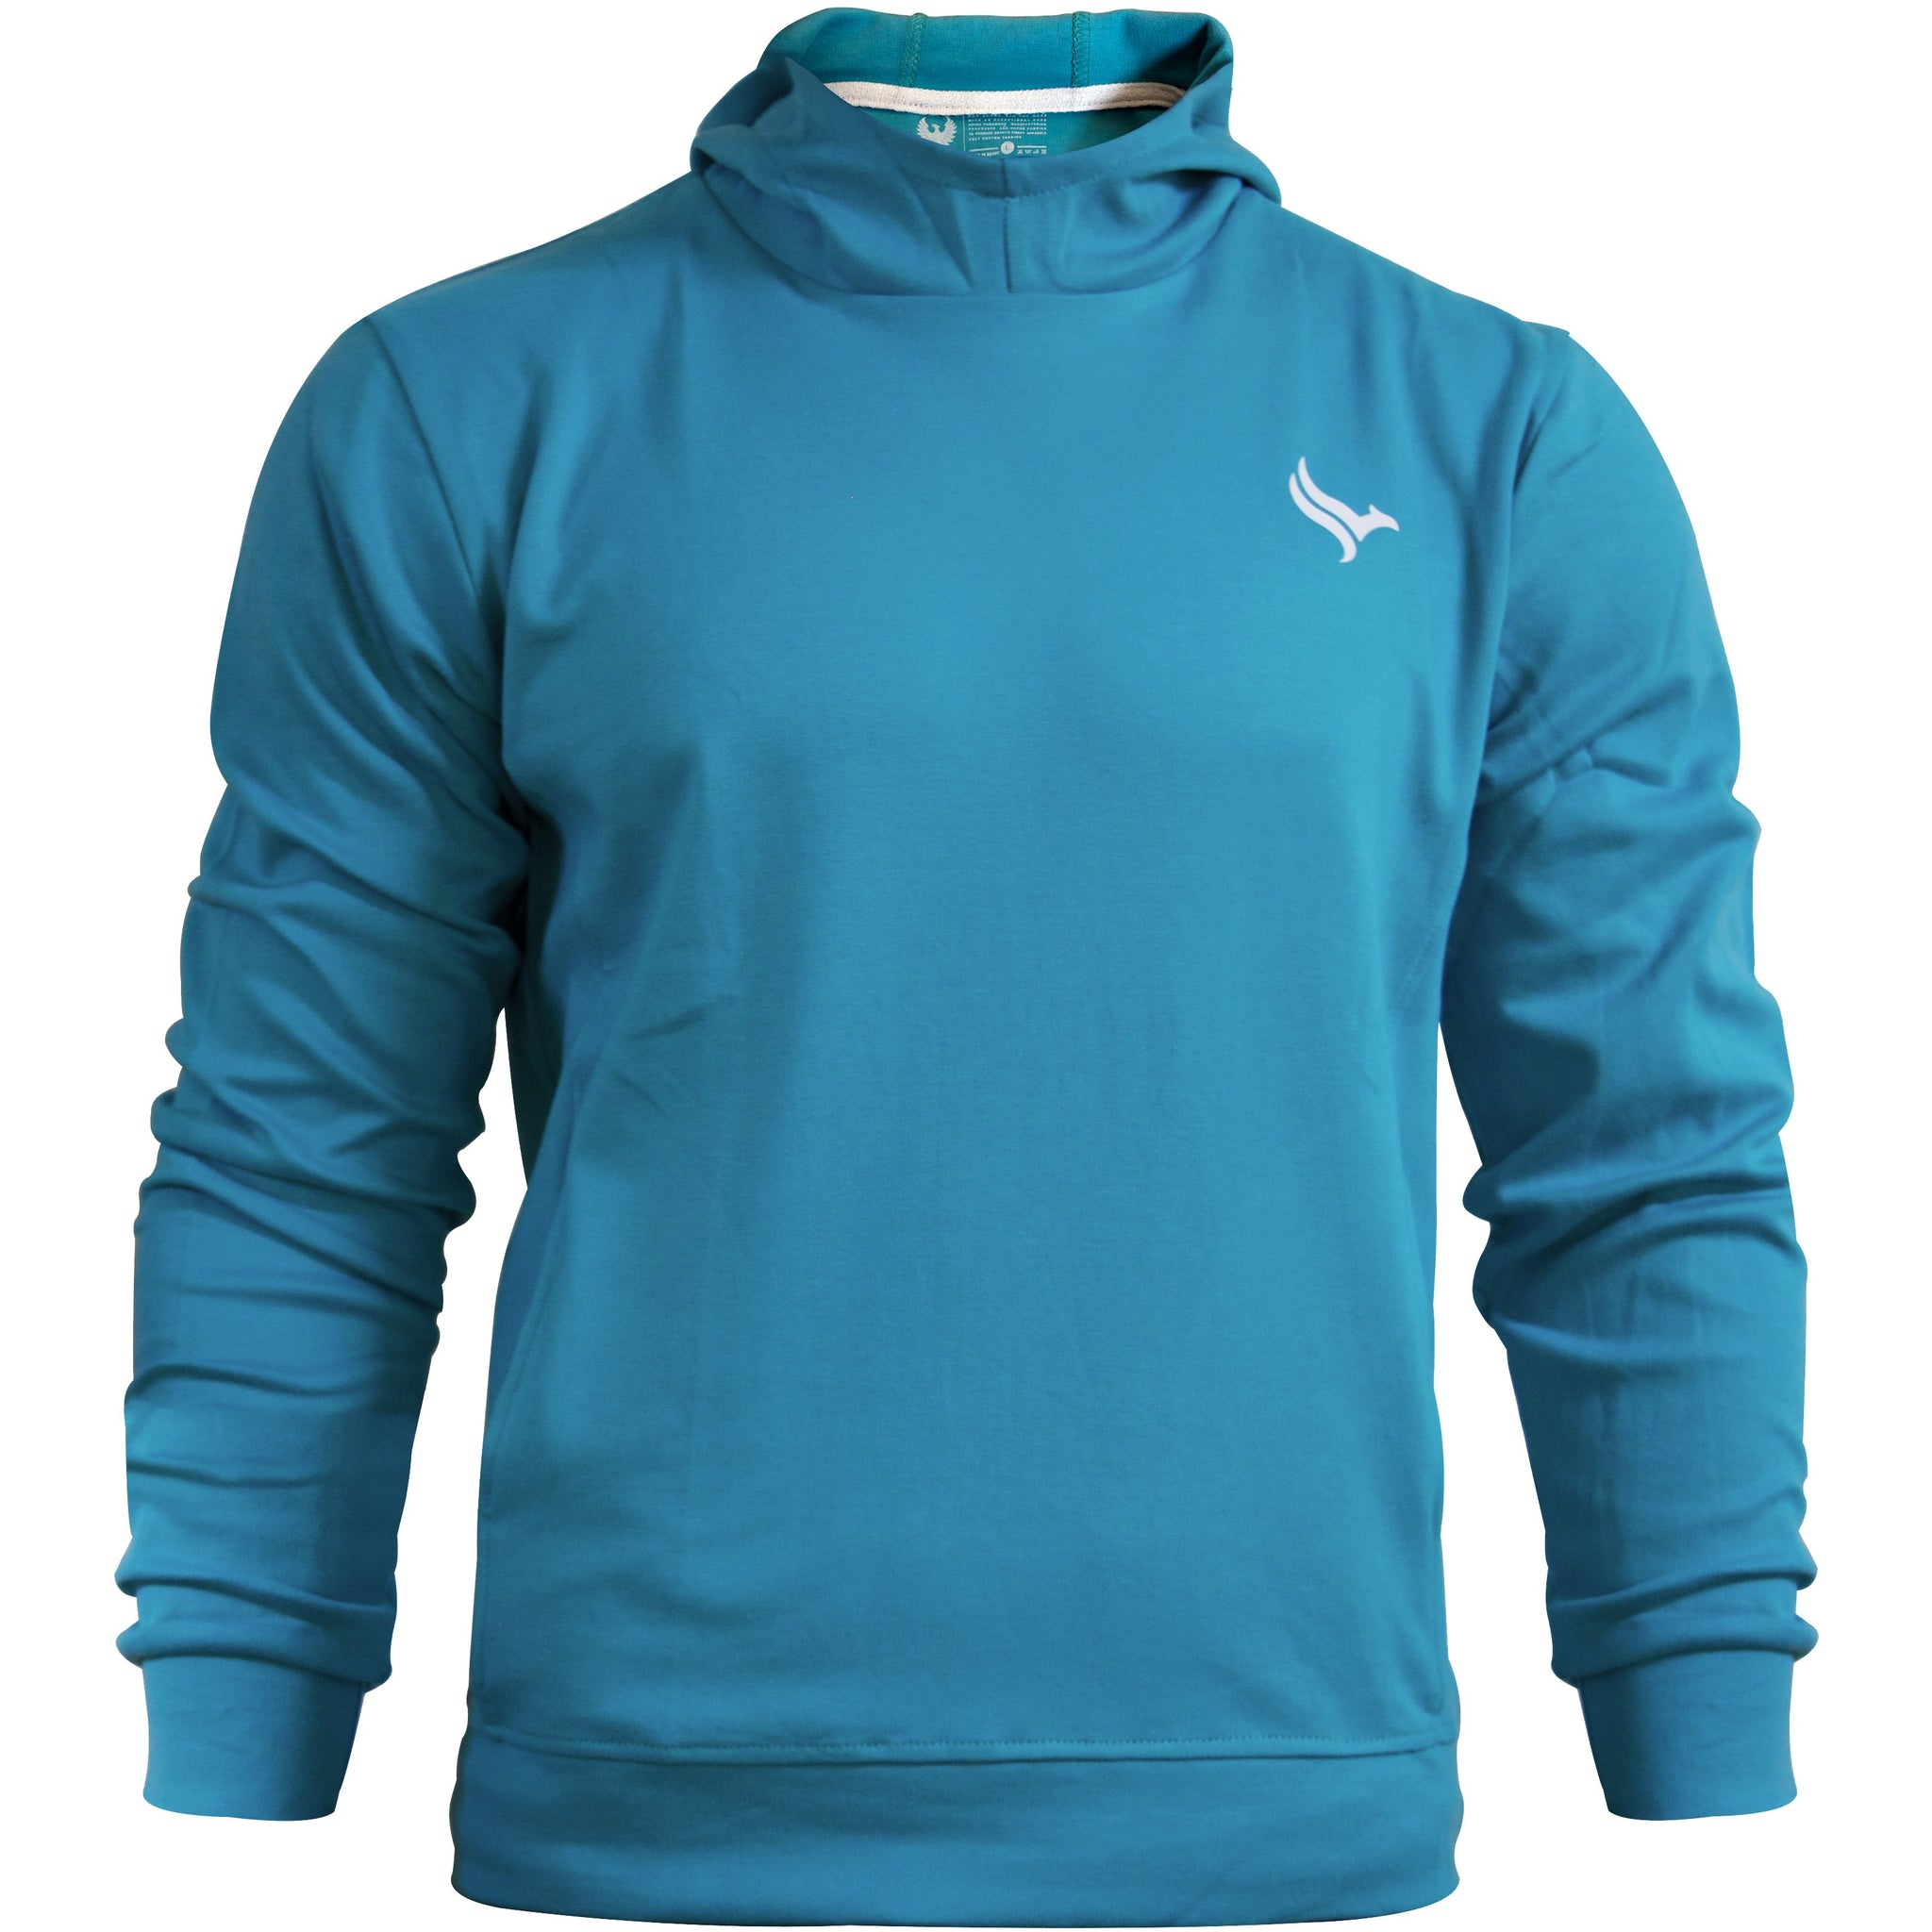 PHOENIX Teal Cotton Men's Hoodie